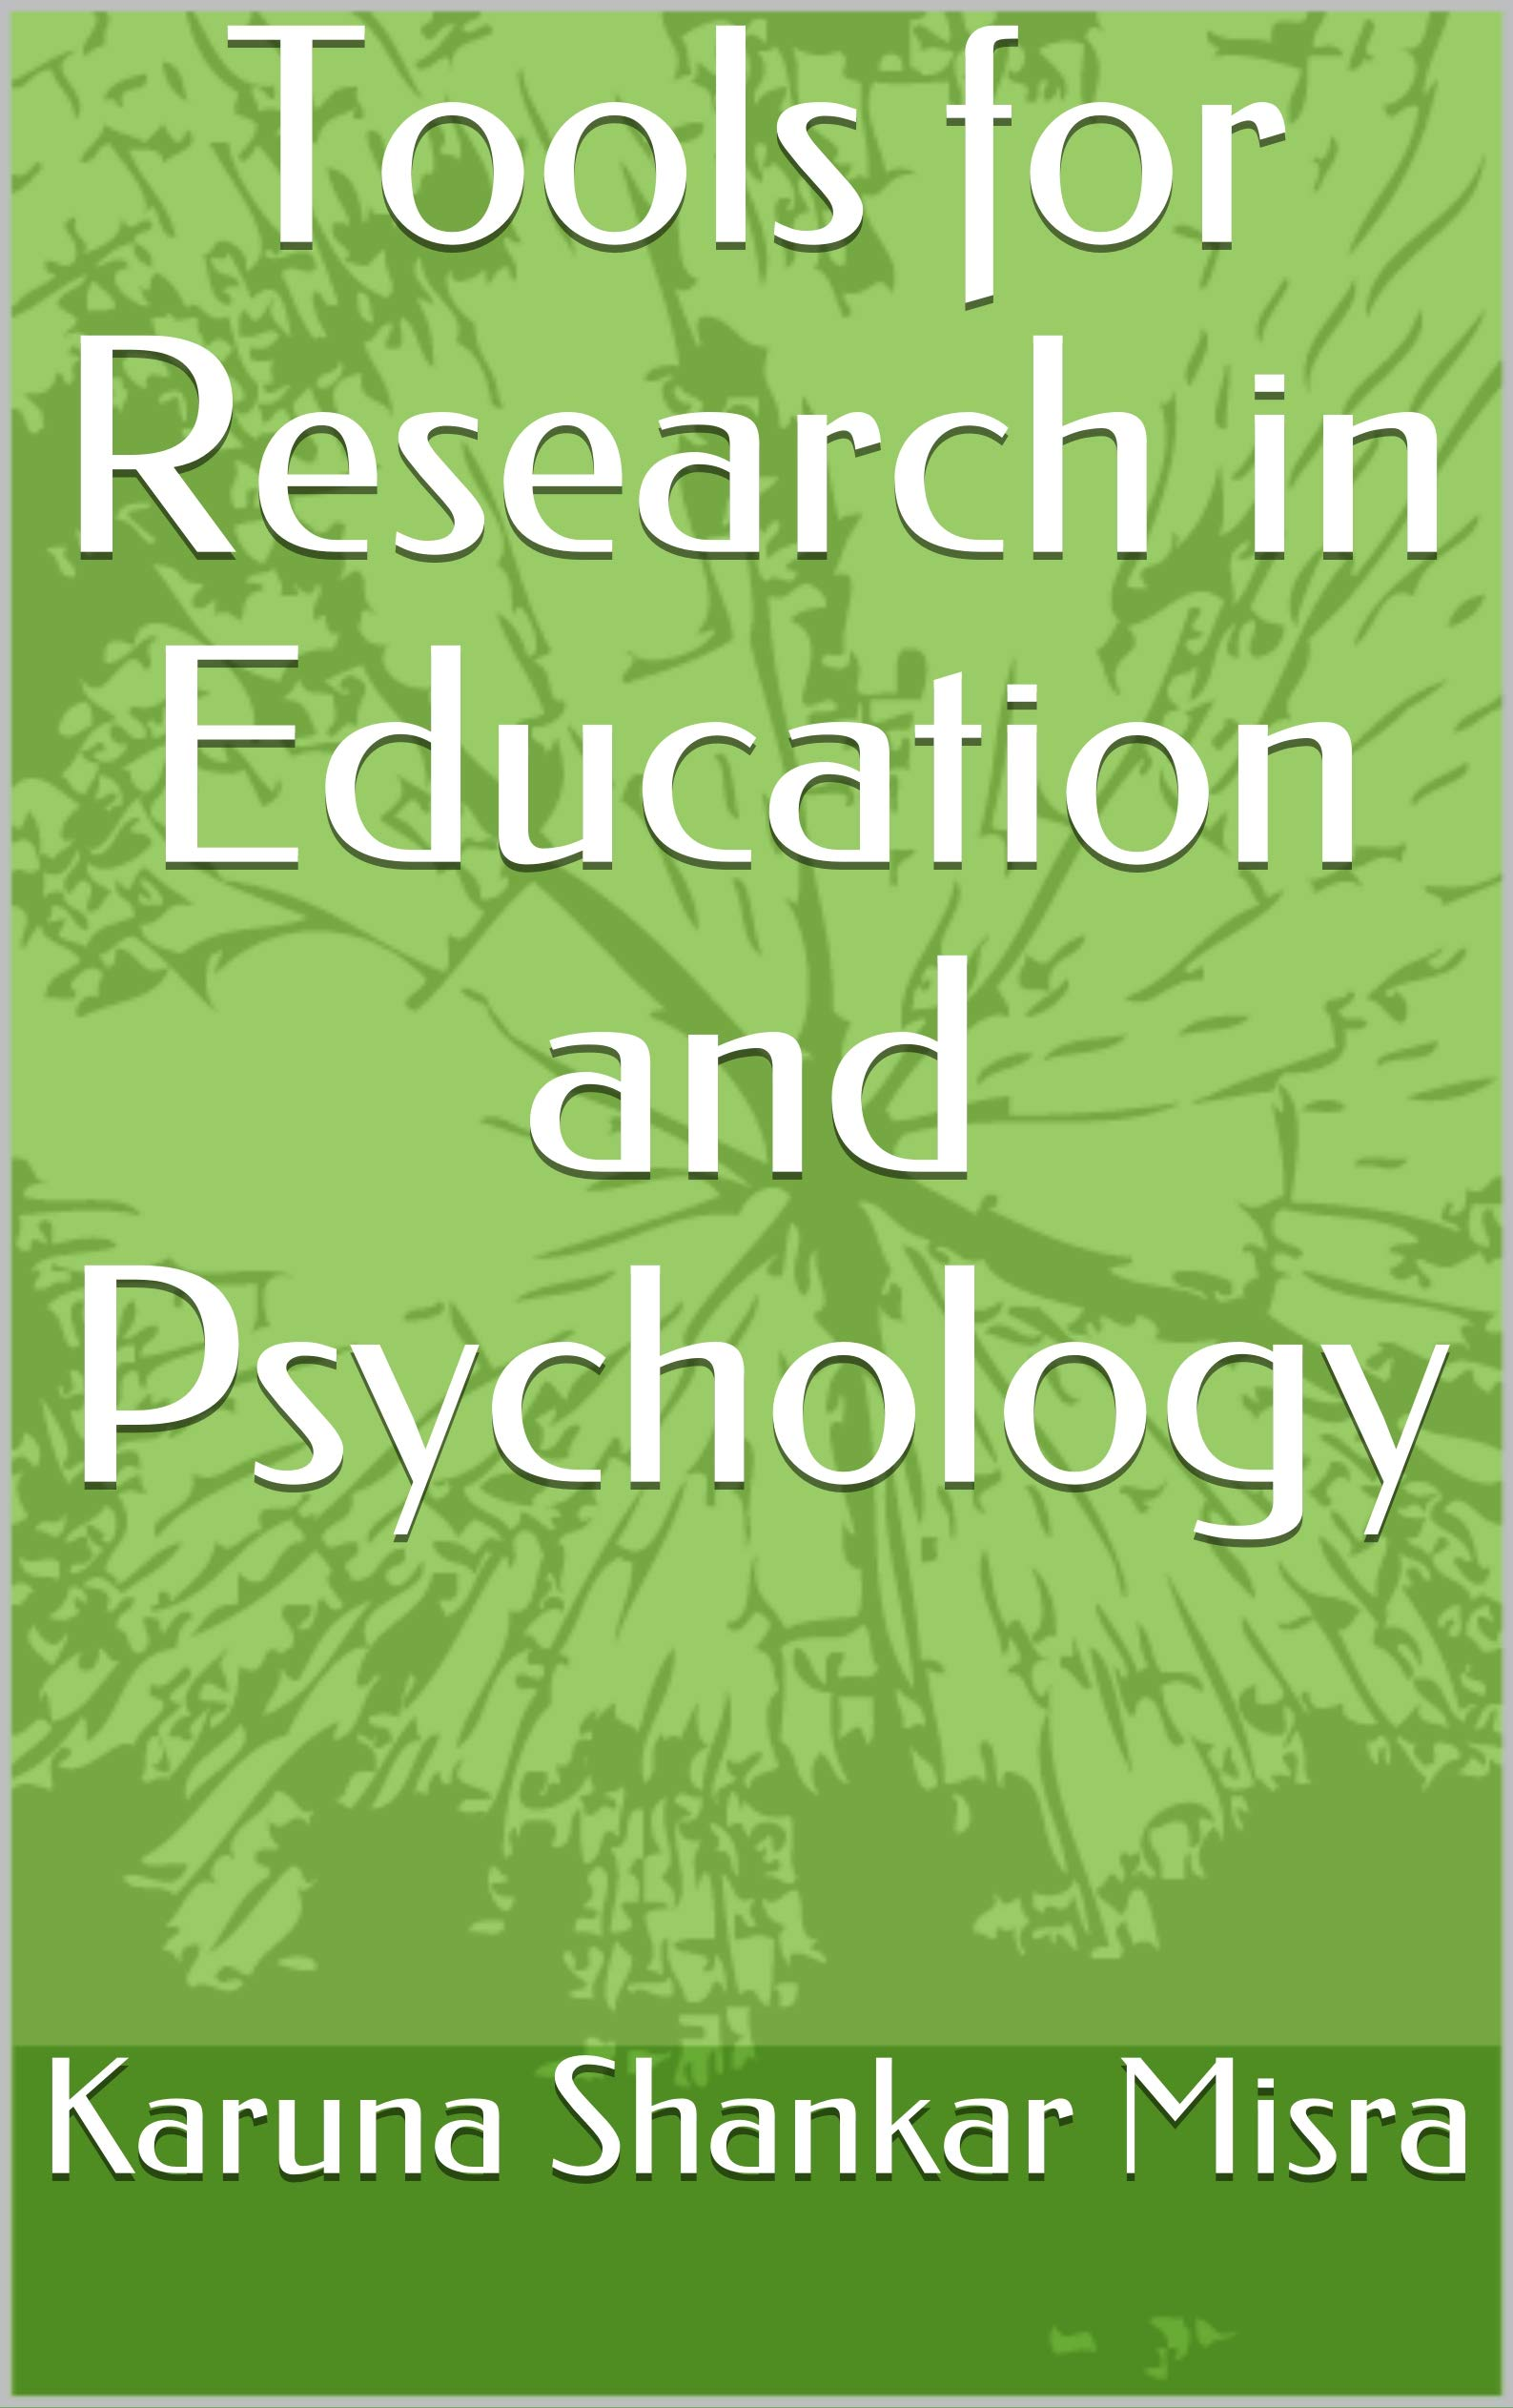 Tools for Research in Education and Psychology